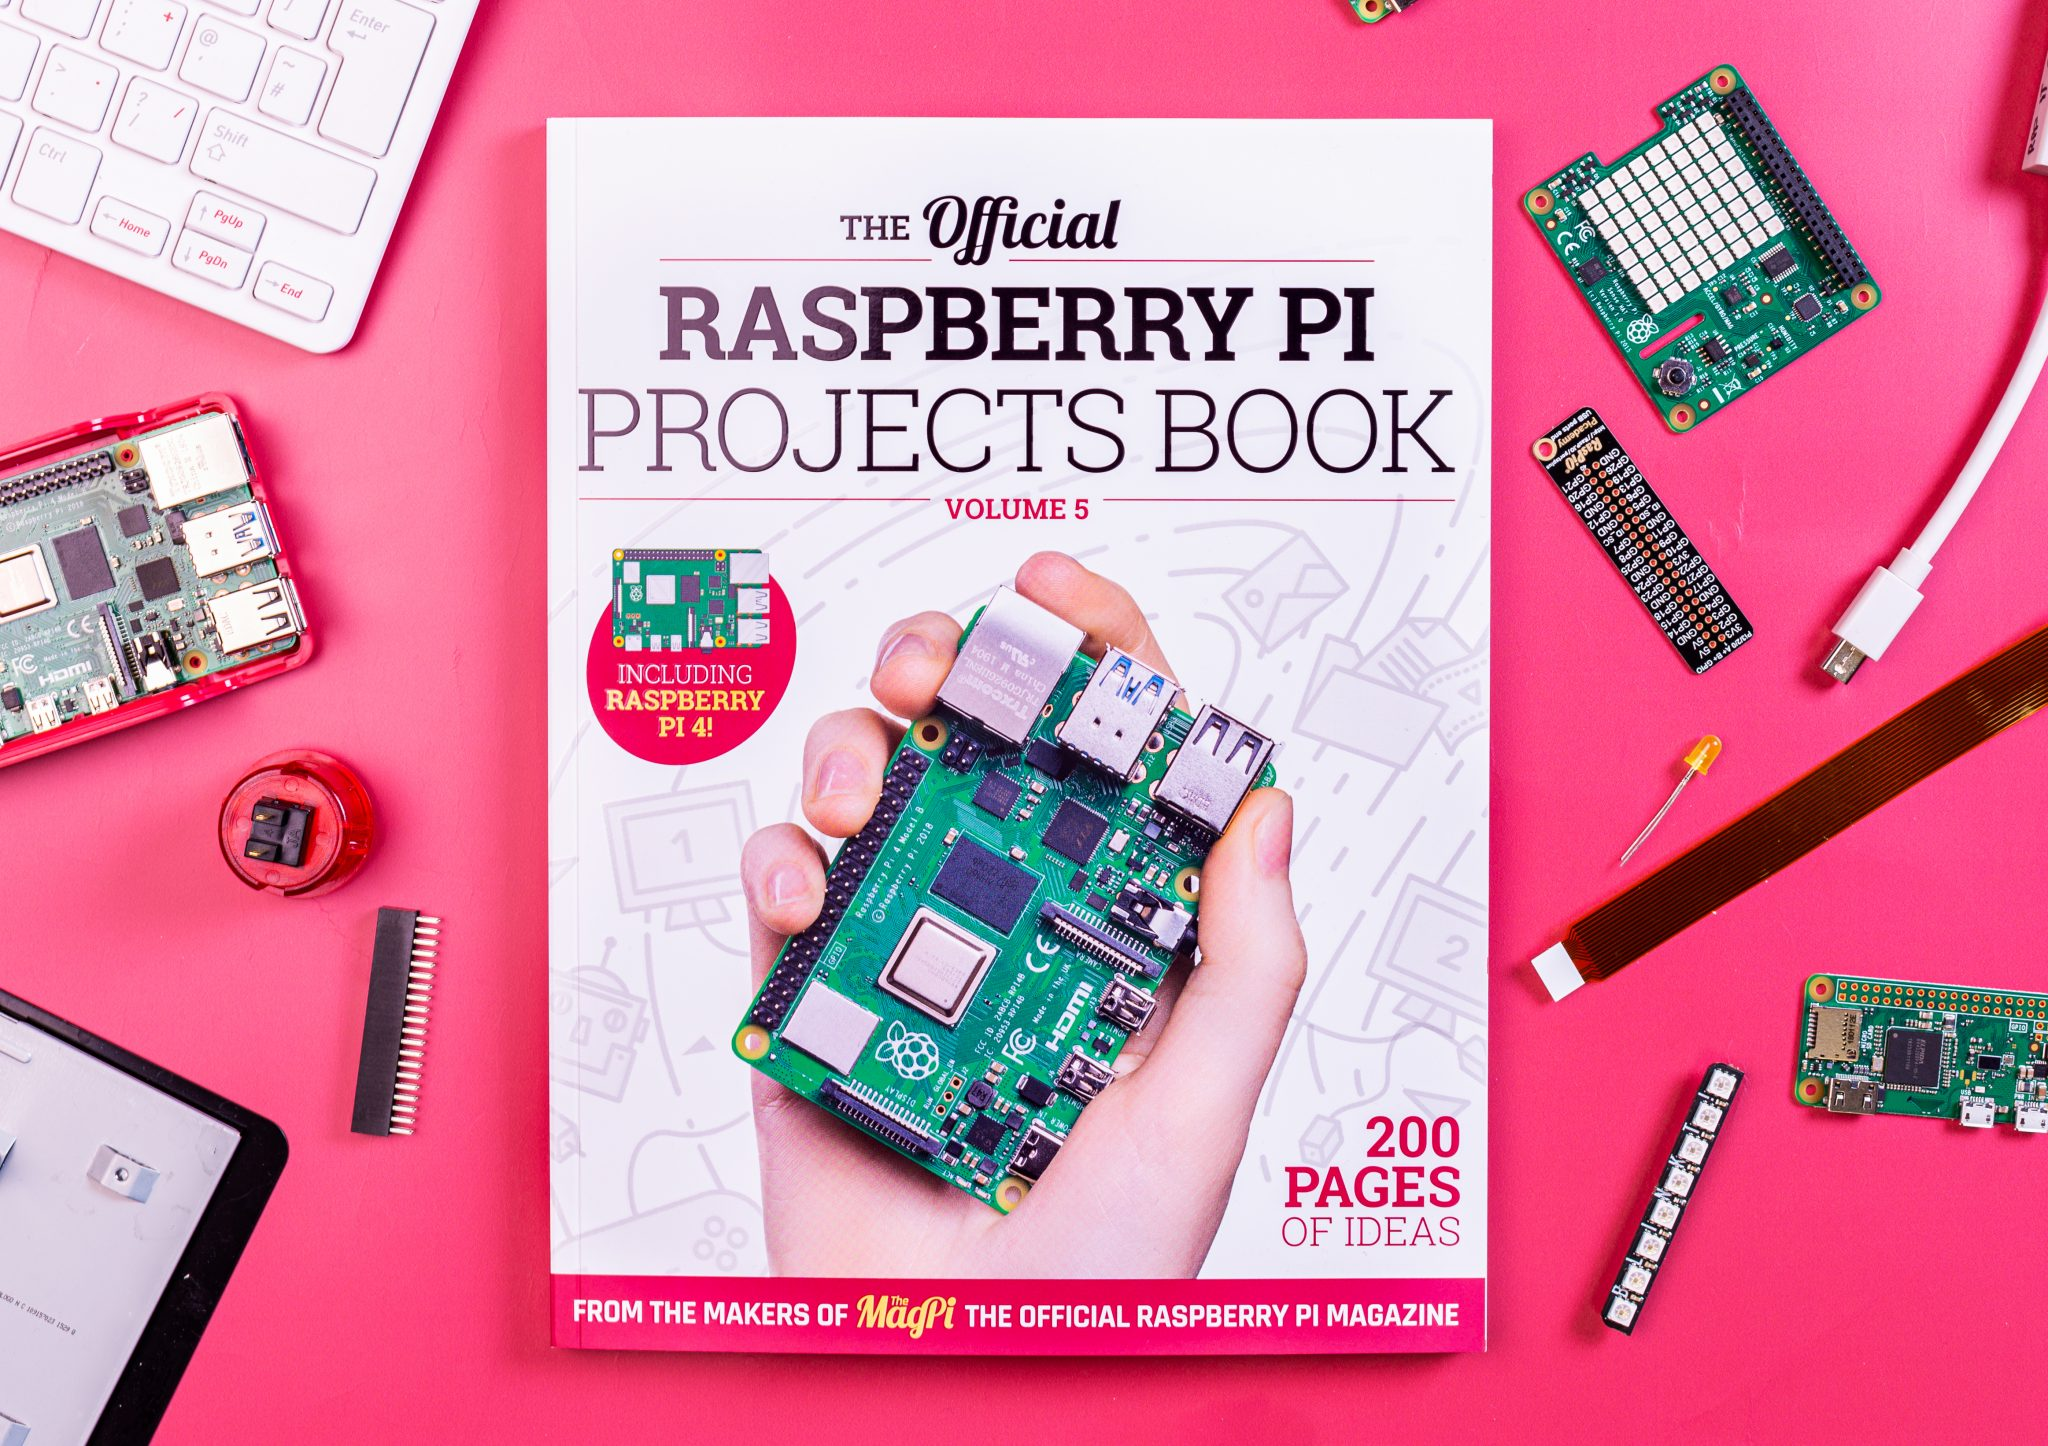 More new books from The MagPi and HackSpace magazines - Raspberry Pi